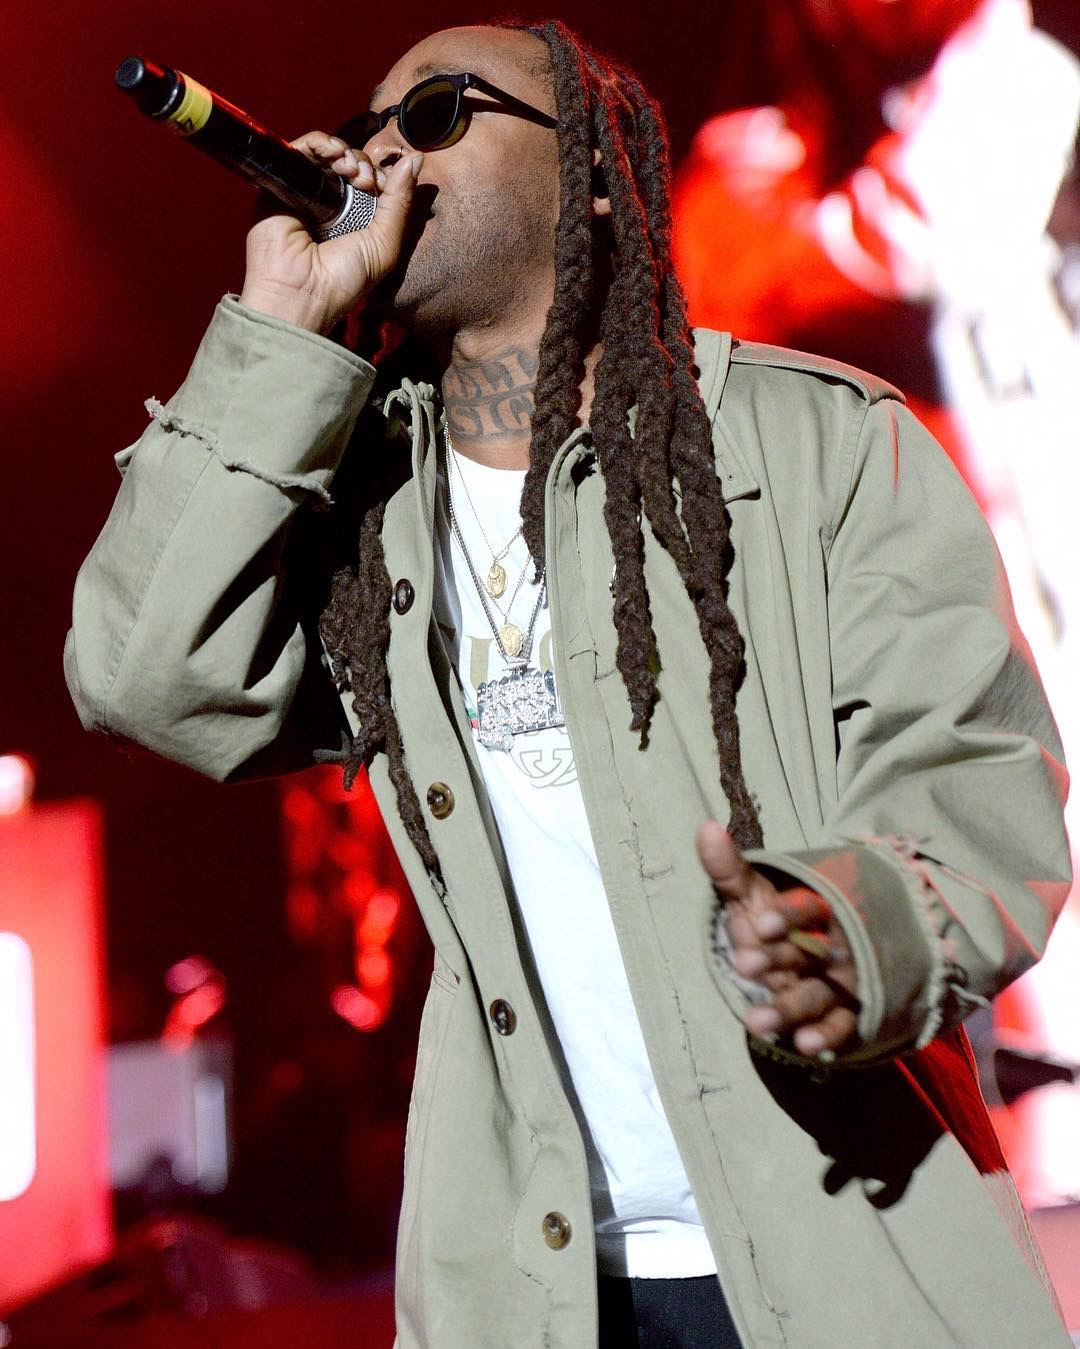 SPOTTED: Ty Dolla Sign Performs In Maison Margiela And Vans